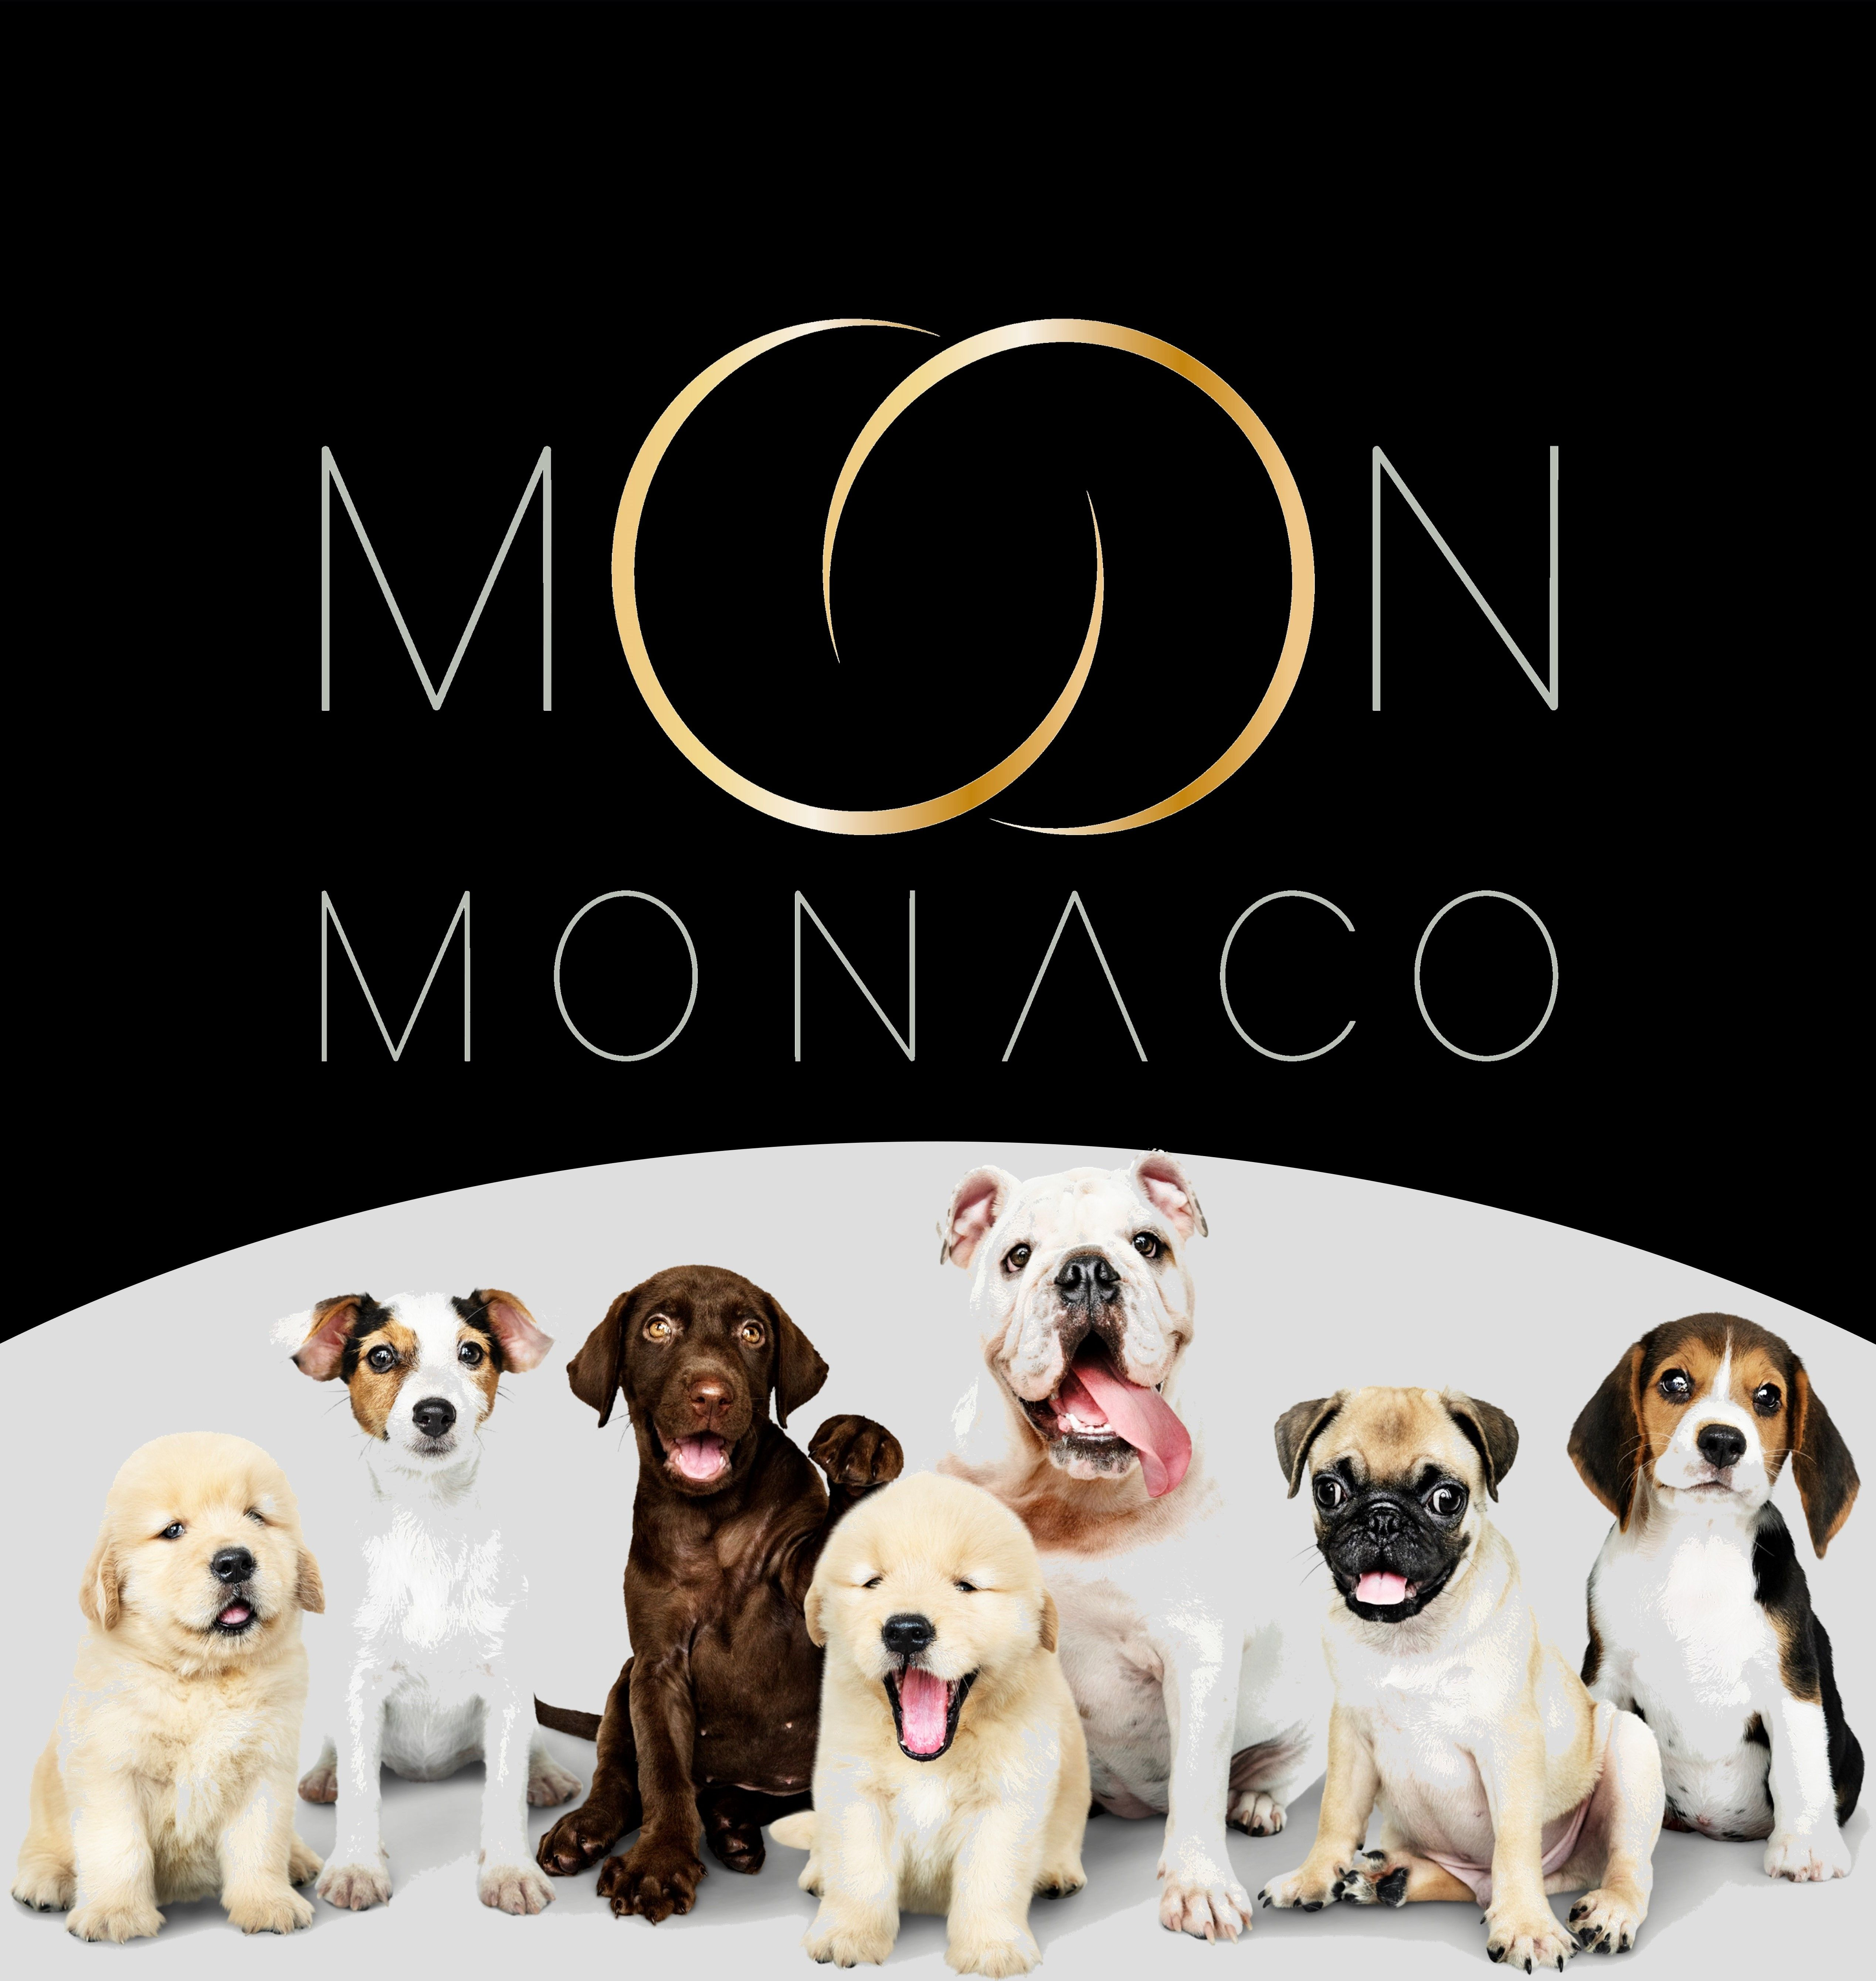 #FeelGoodInstant #MoonMonaco #FineJewelleryForPets #18CaratGold #NewCollection #Celestial #FashionForPets #Monaco #Design #DogLovers